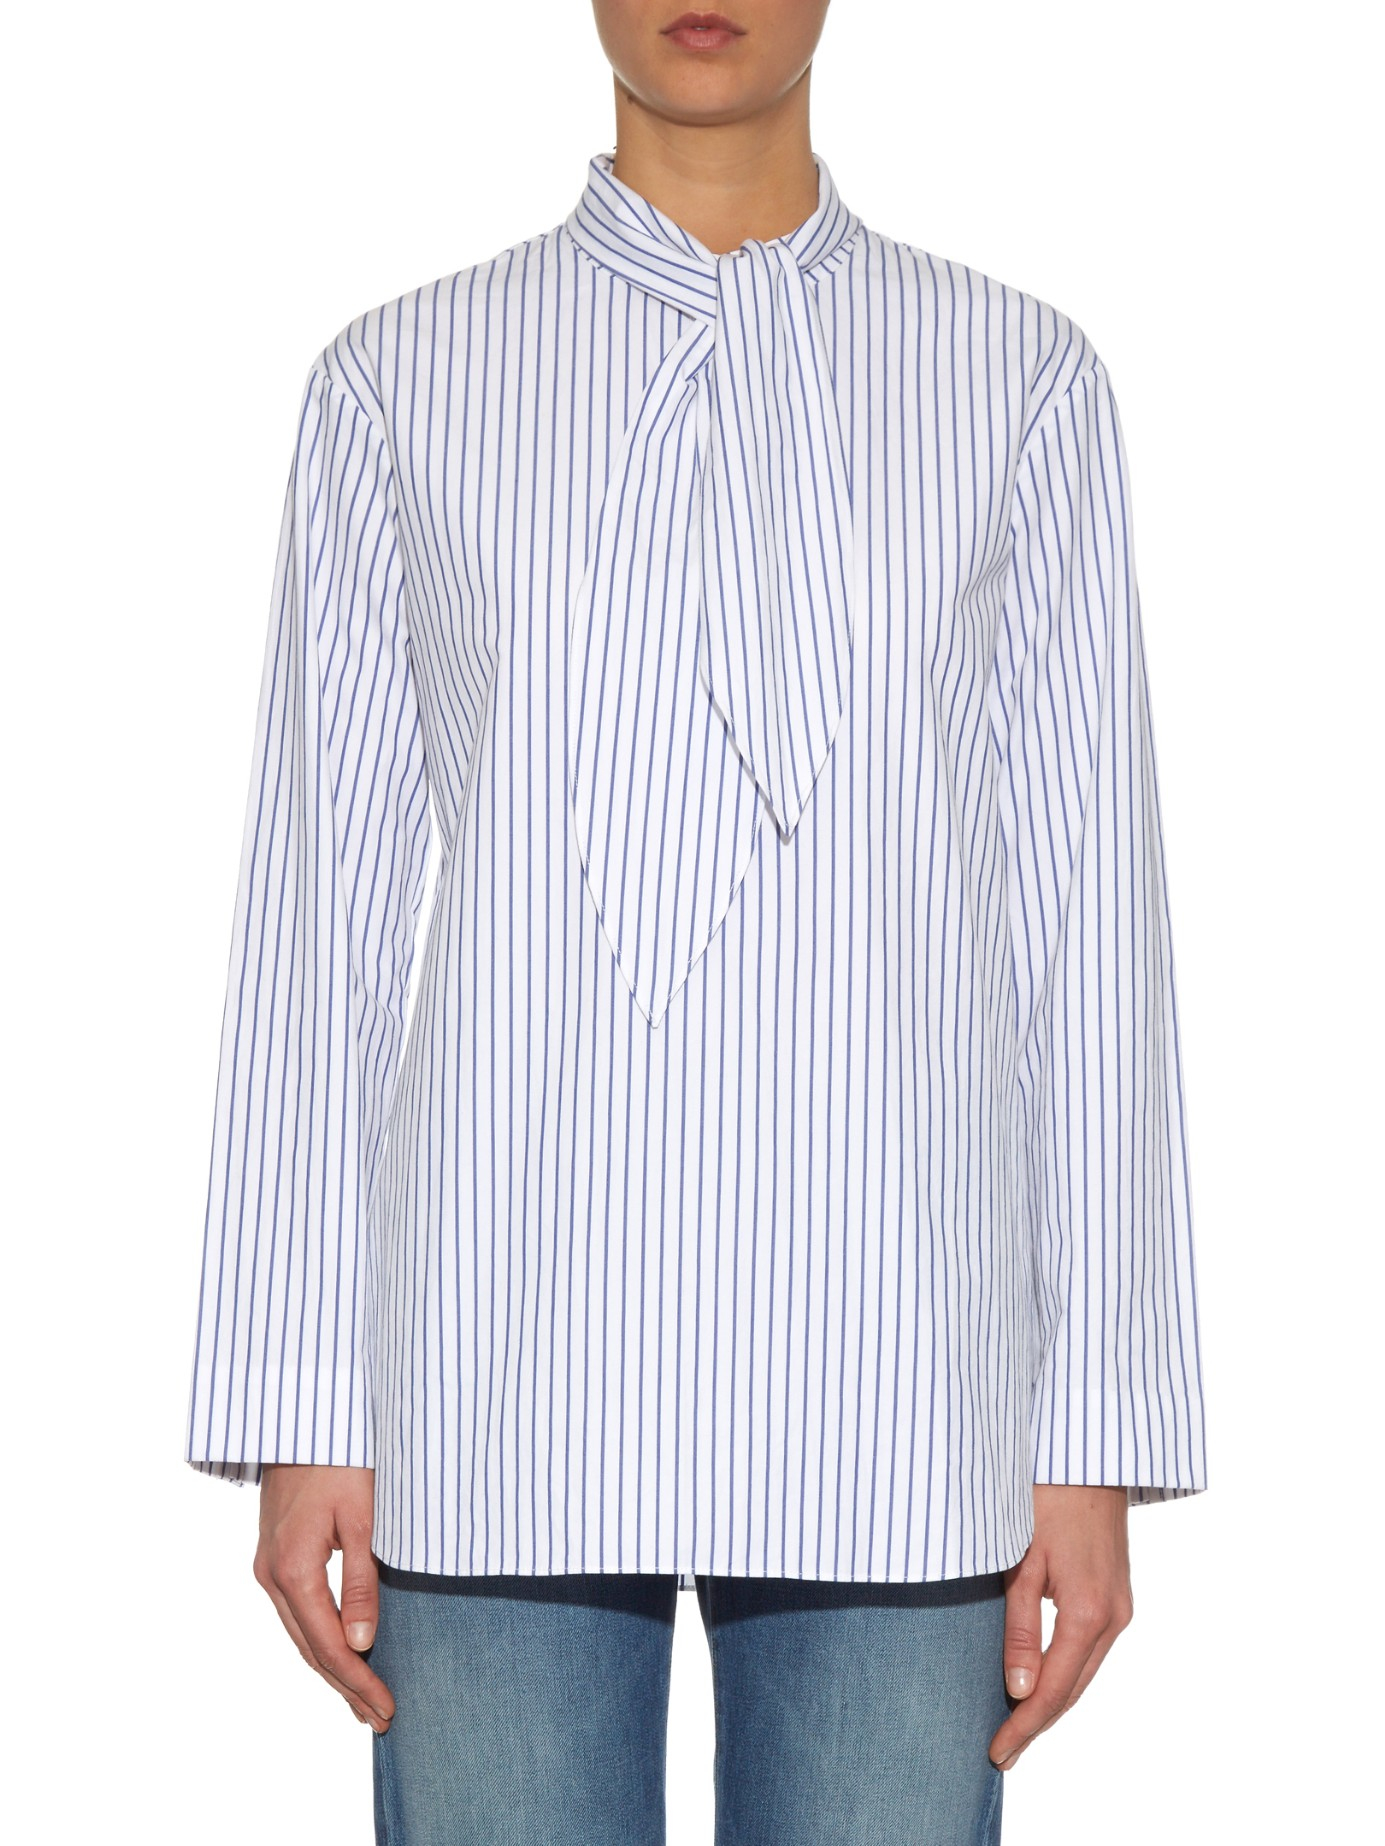 Lyst trademark tie neck striped cotton shirt in blue for Blue striped shirt with tie